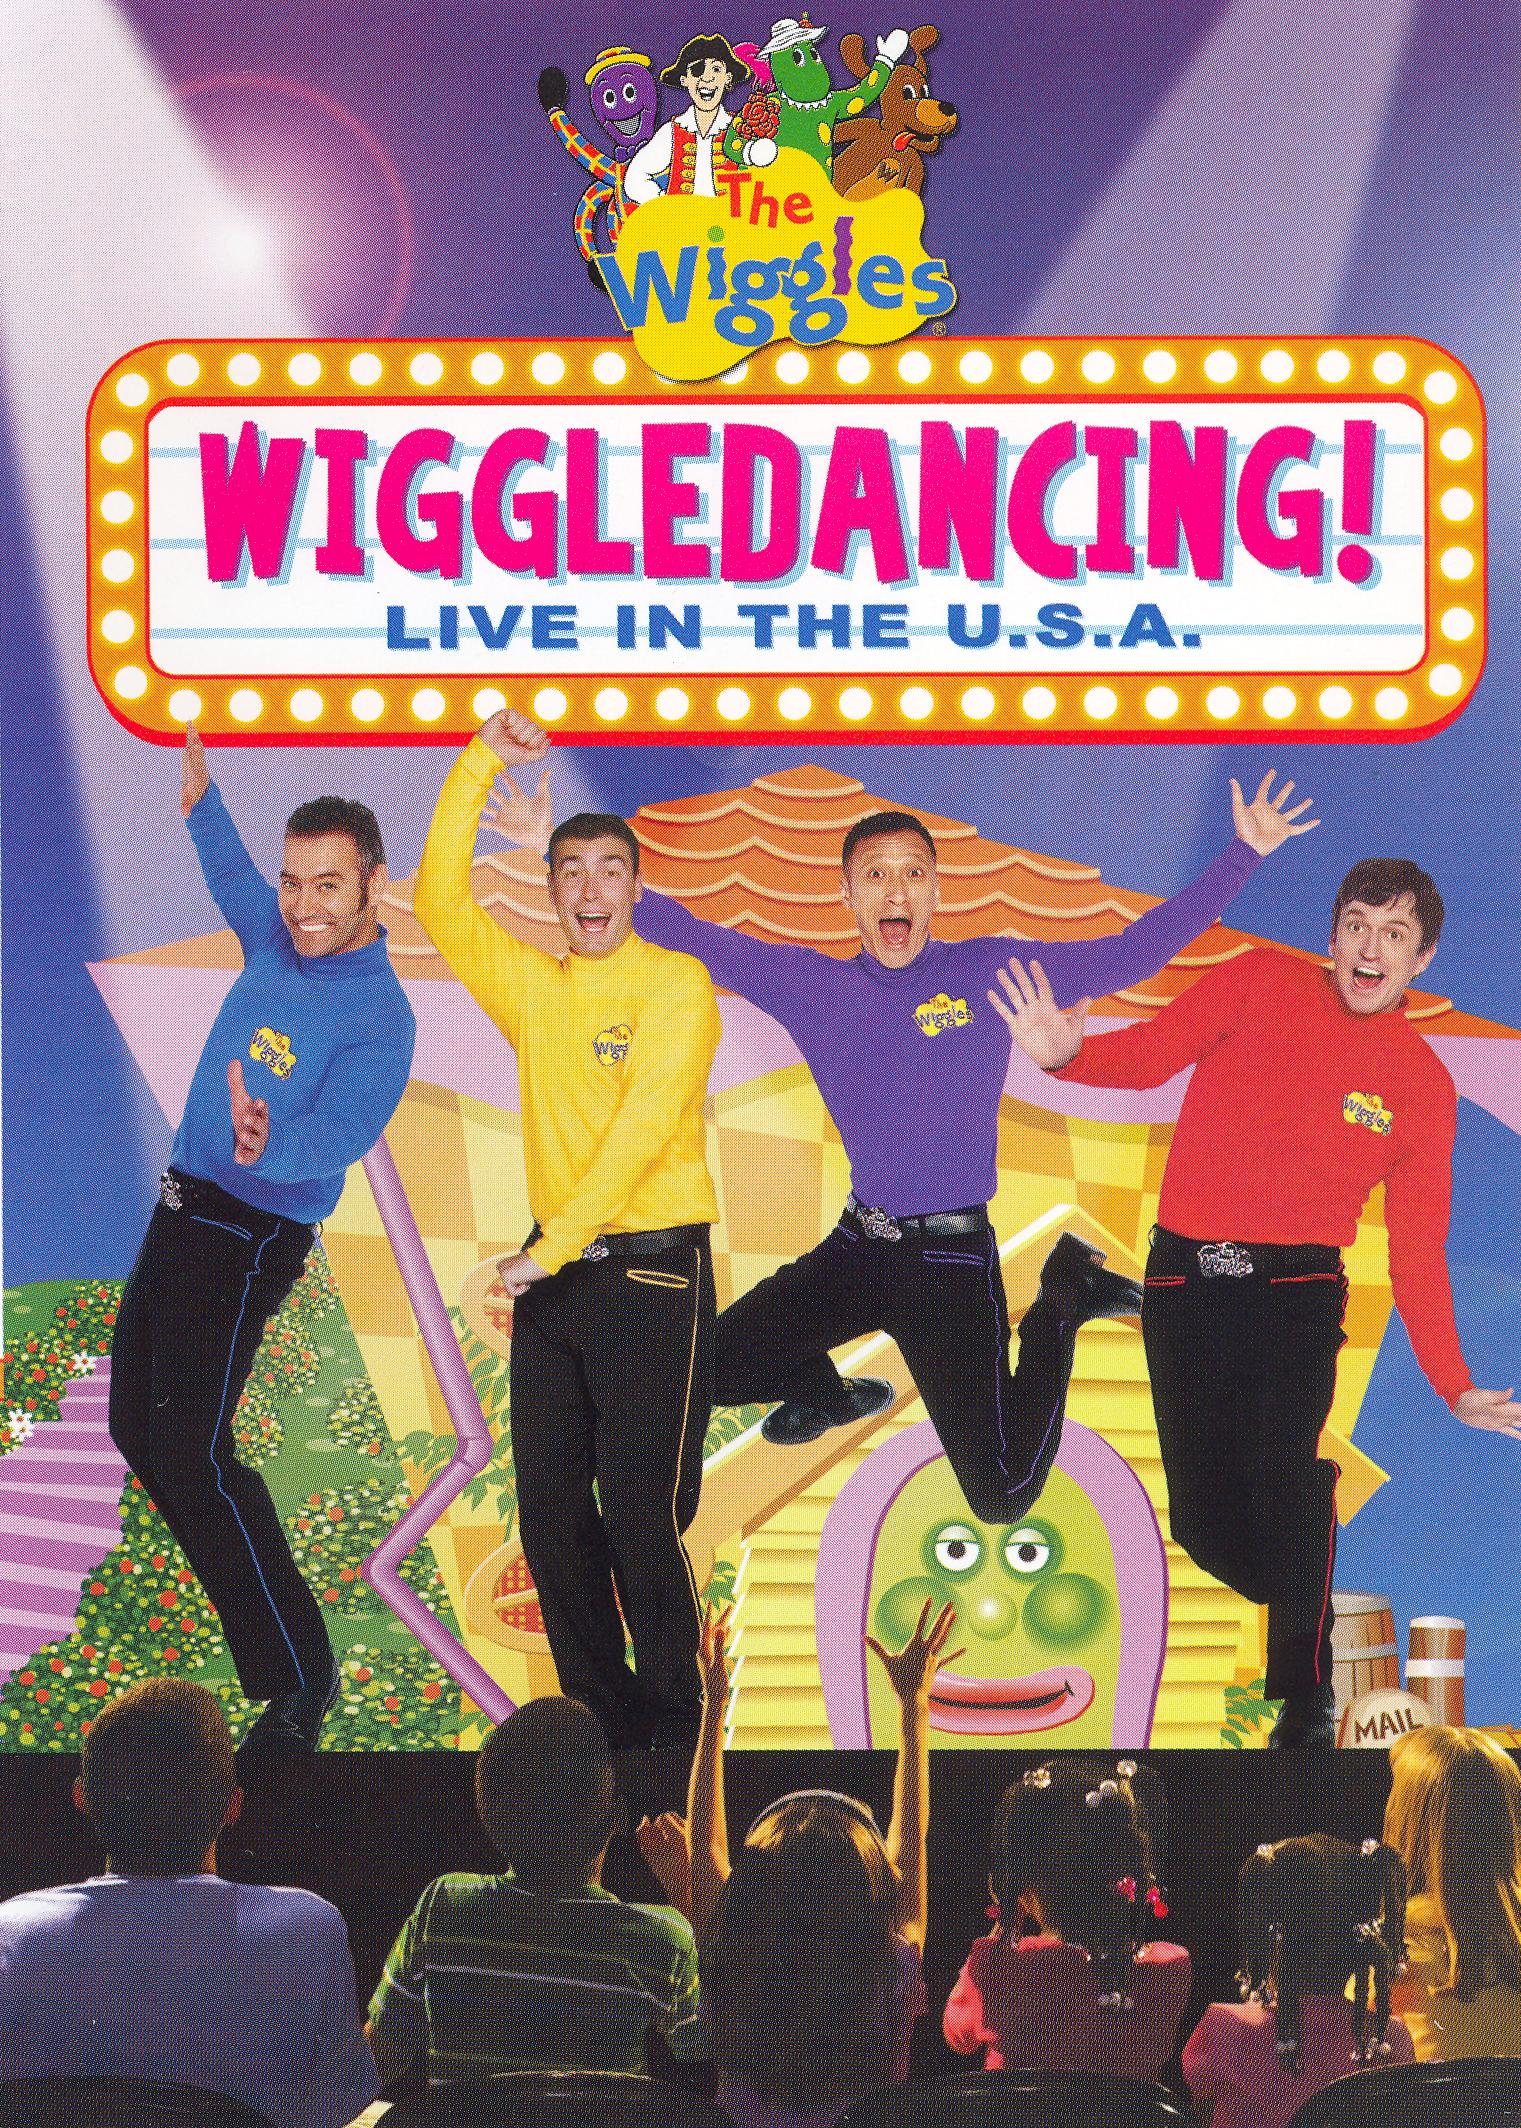 The Wiggles: Wiggledancing! Live in the U.S.A.